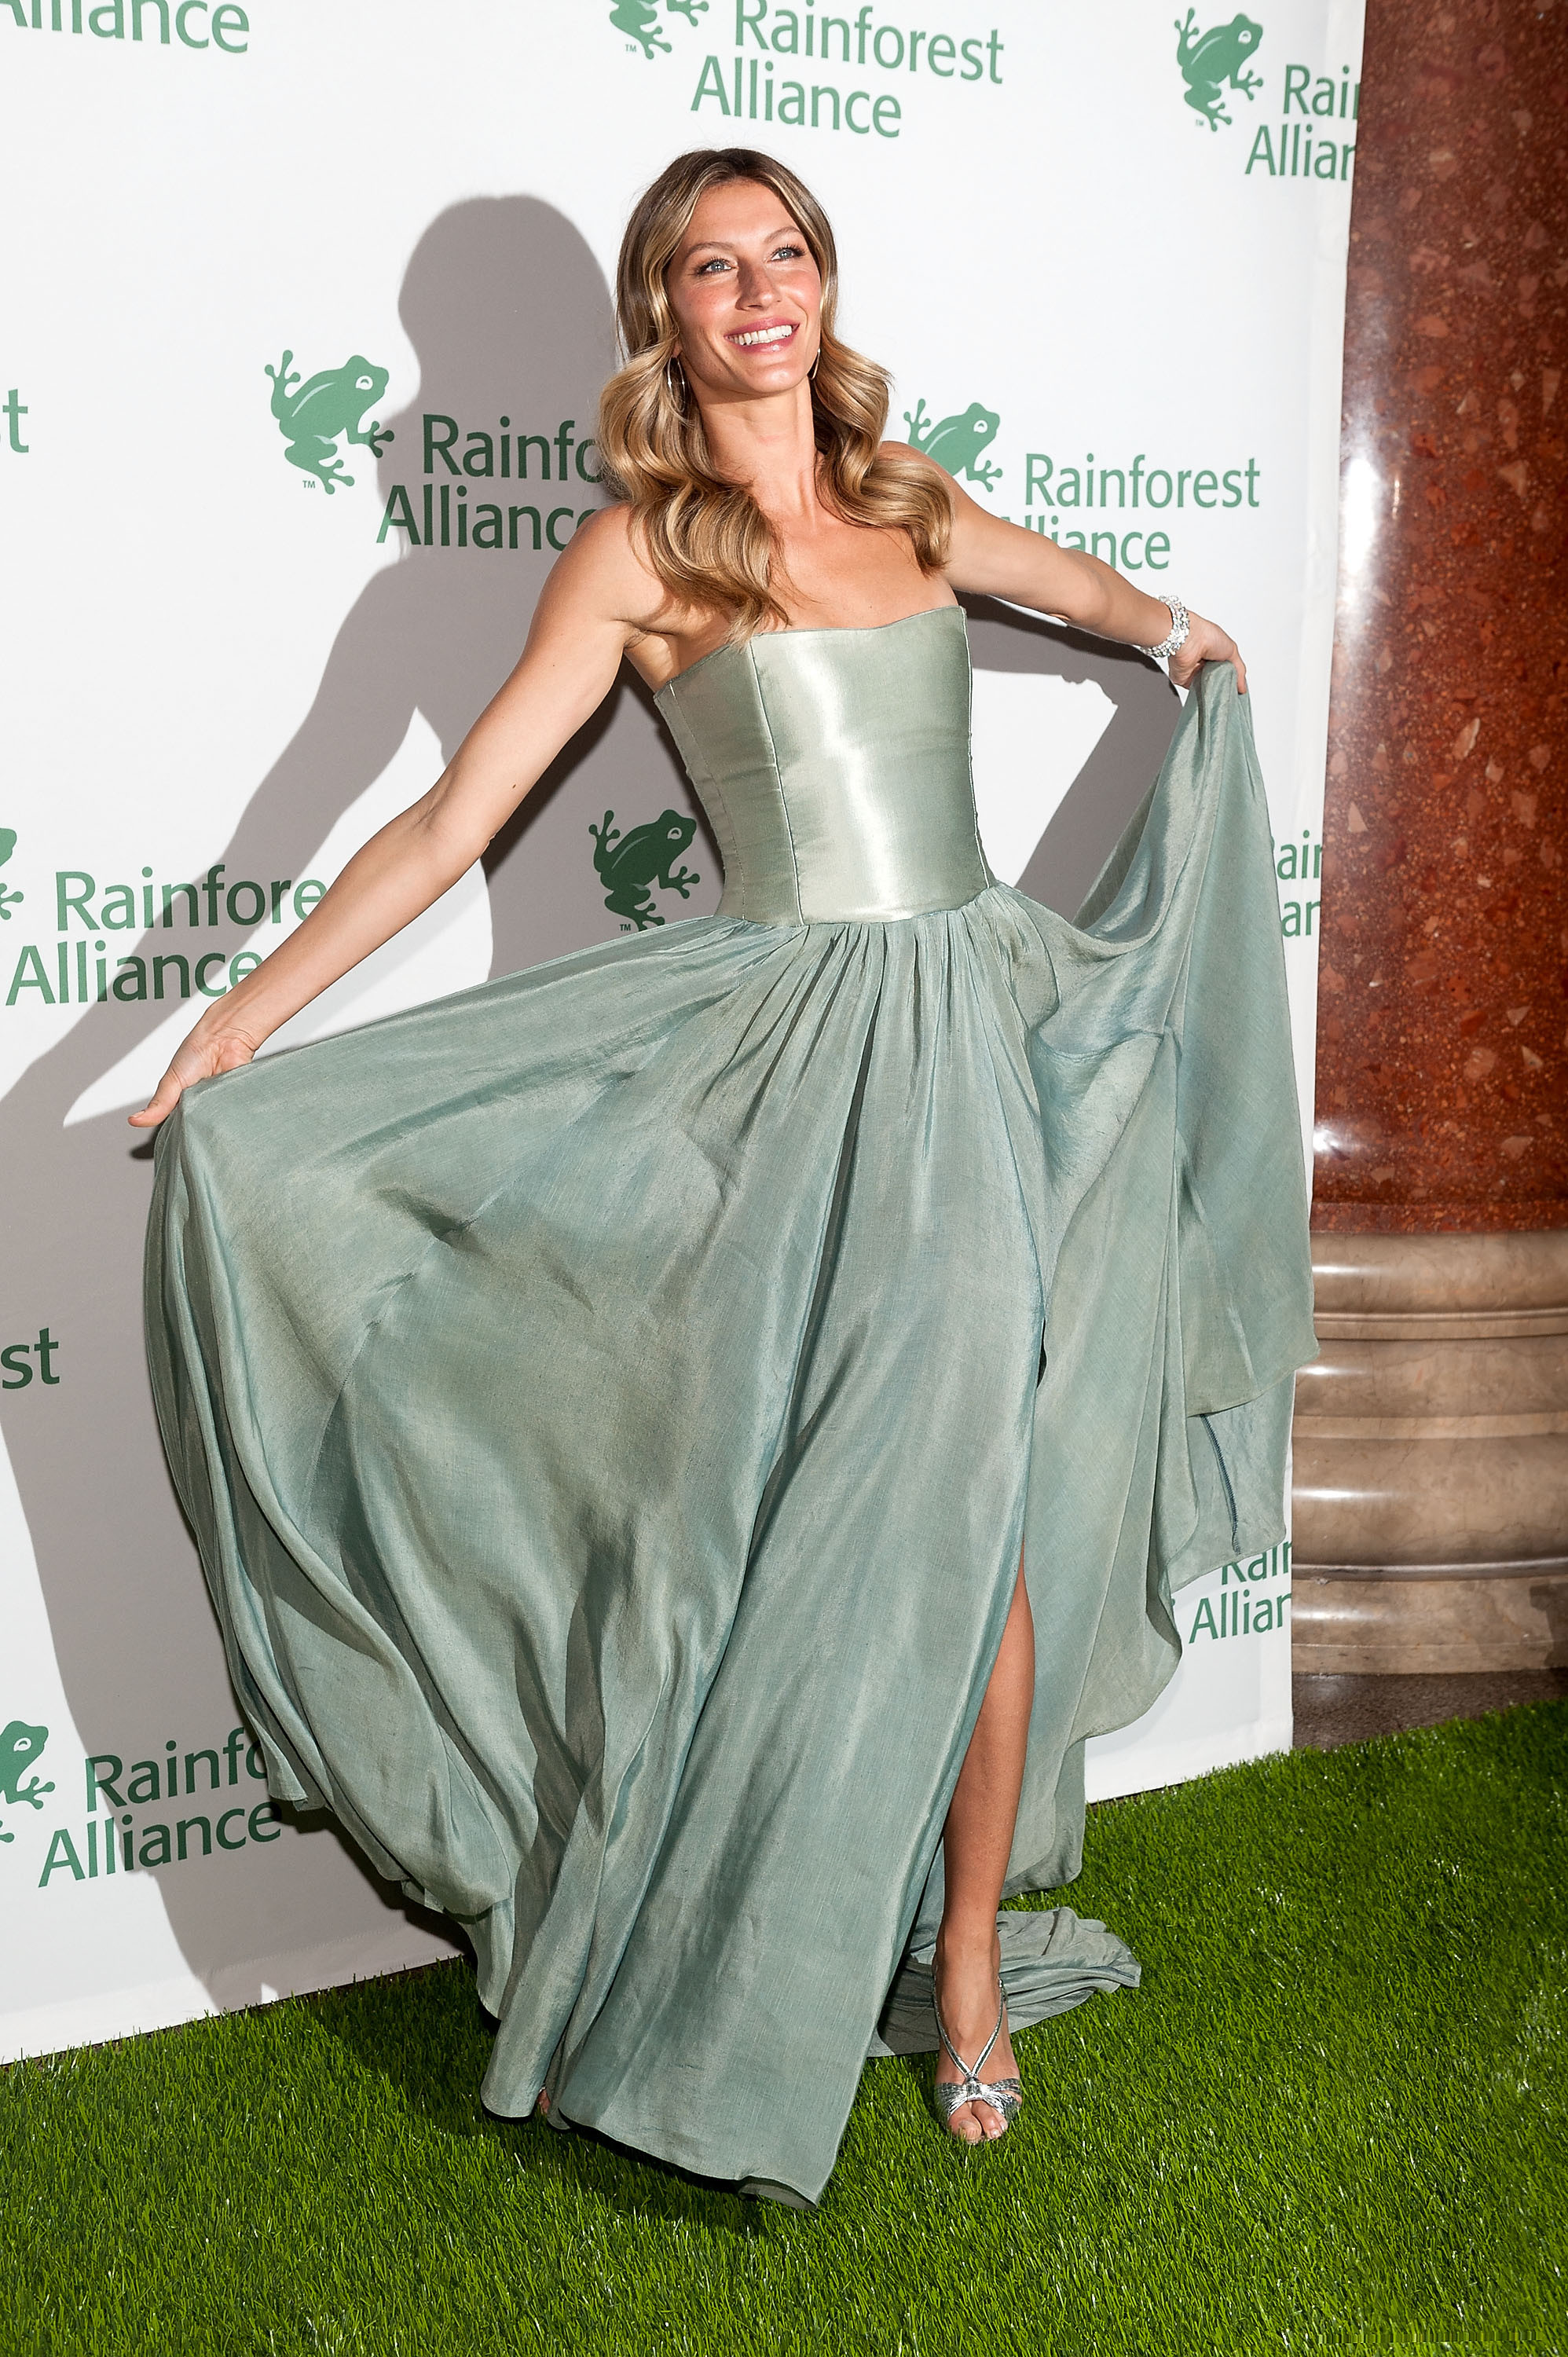 Gisele Bundchen Channels Her Inner Princess At Rainforest ...